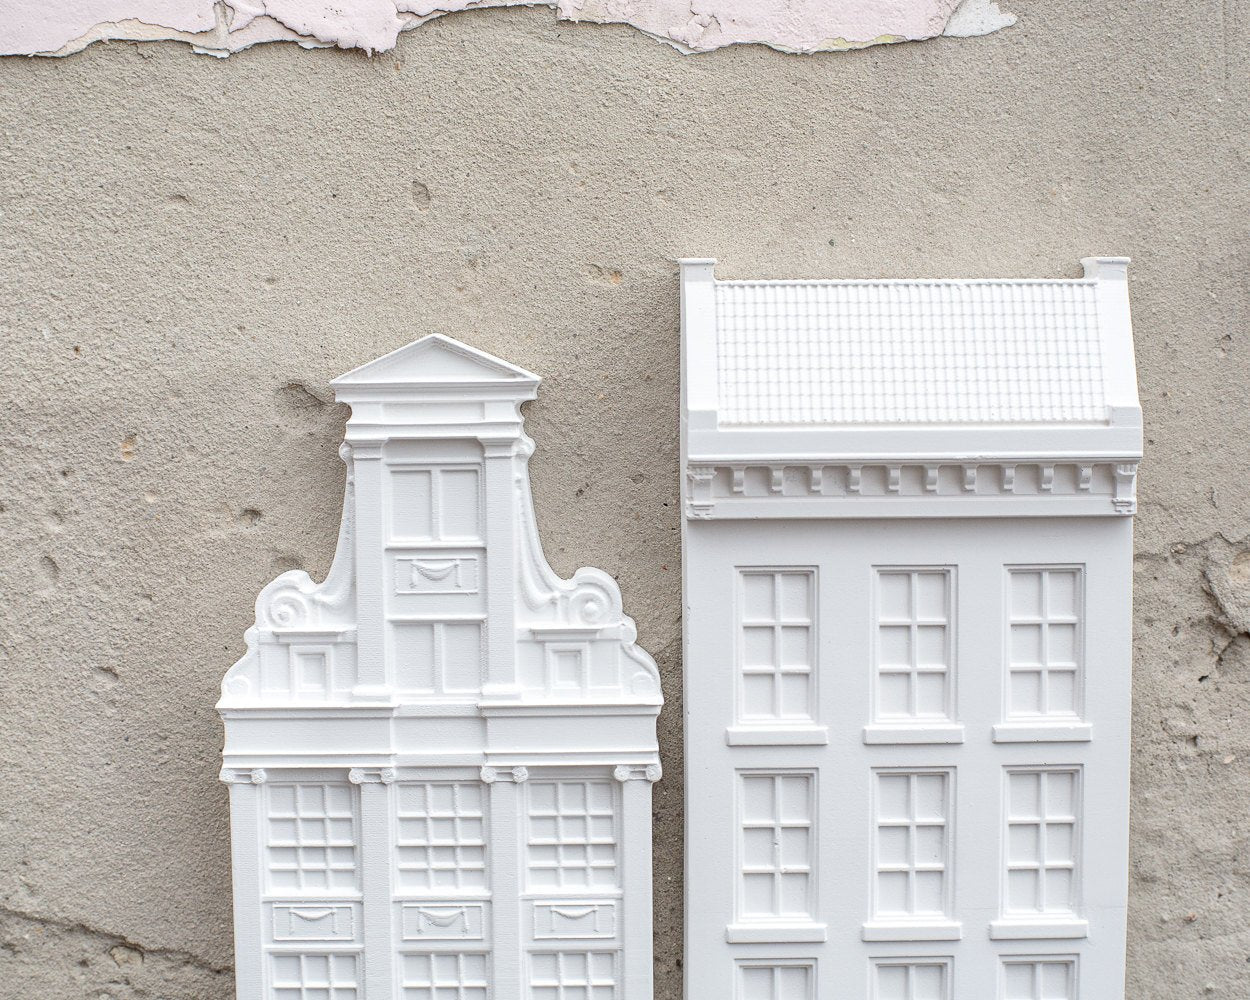 Two Architectural plaster models Facades of Amsterdam Houses I and II. Unique wall art. Perfect gift for architecture and design lover.